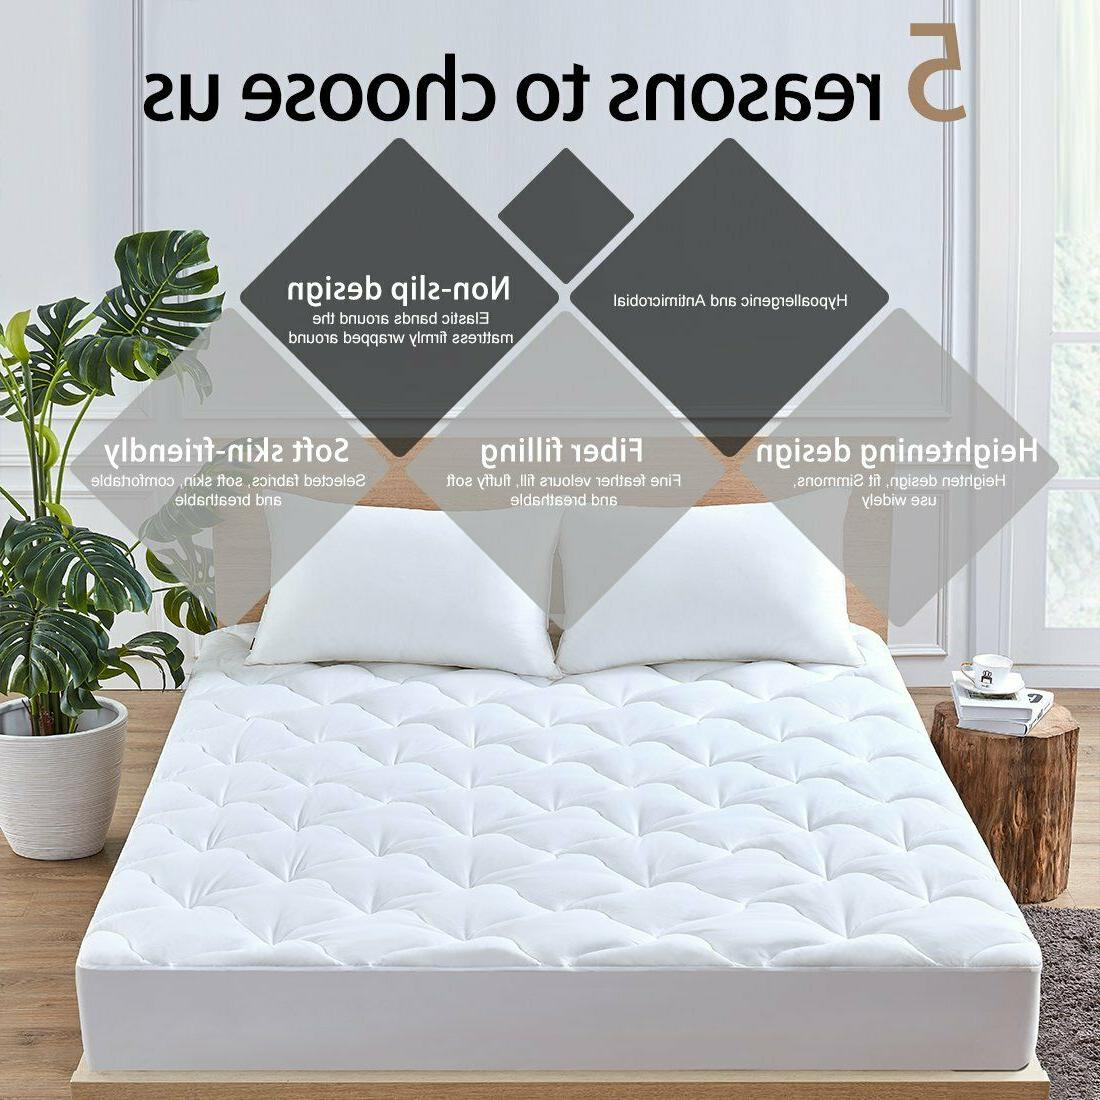 Full Cover Pillow Top Bed Breathable Hypoallergenic New